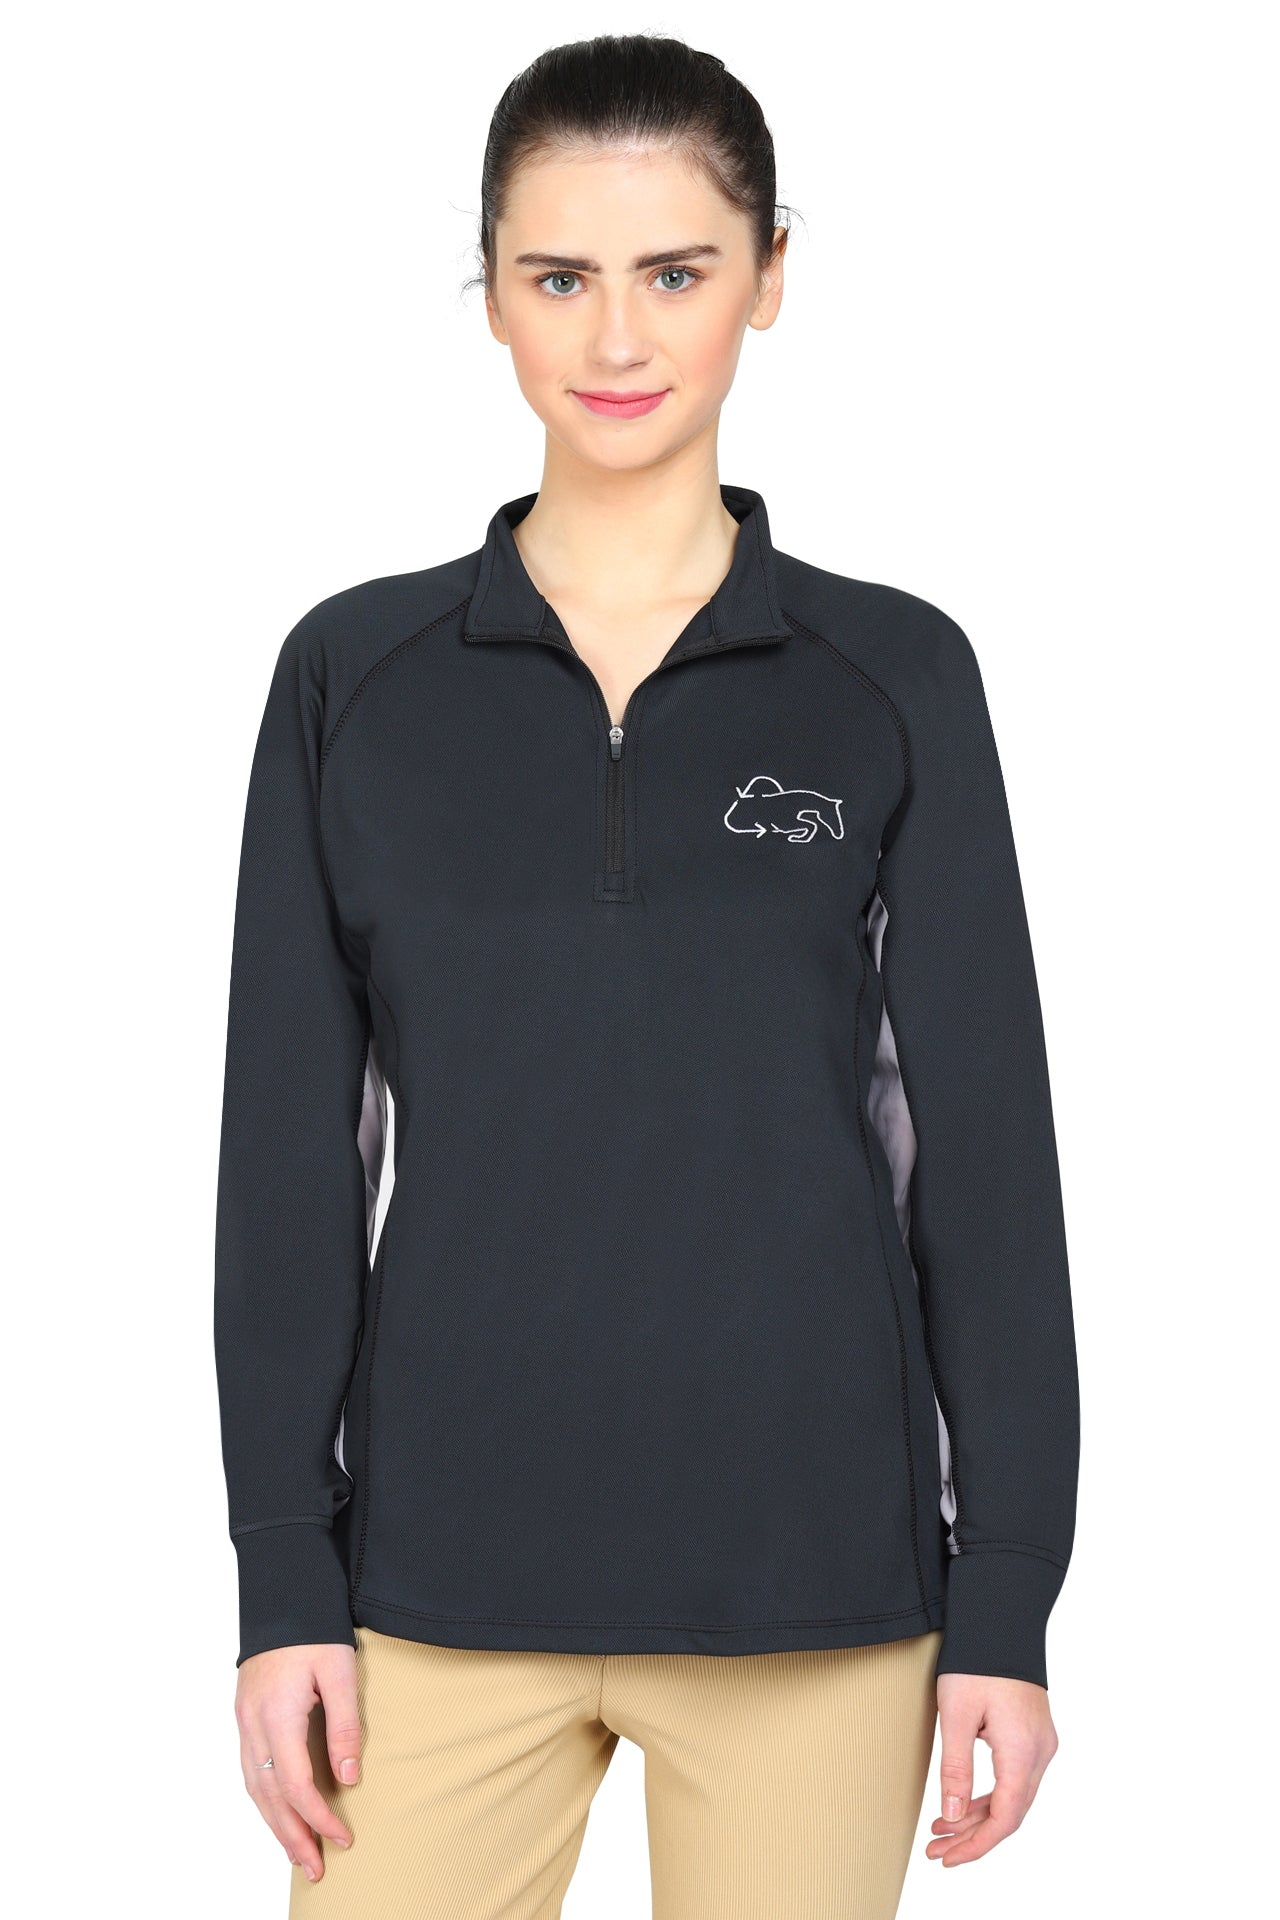 Ecorider By Tuffrider Ladies Denali Sport Shirt - TuffRider - Breeches.com